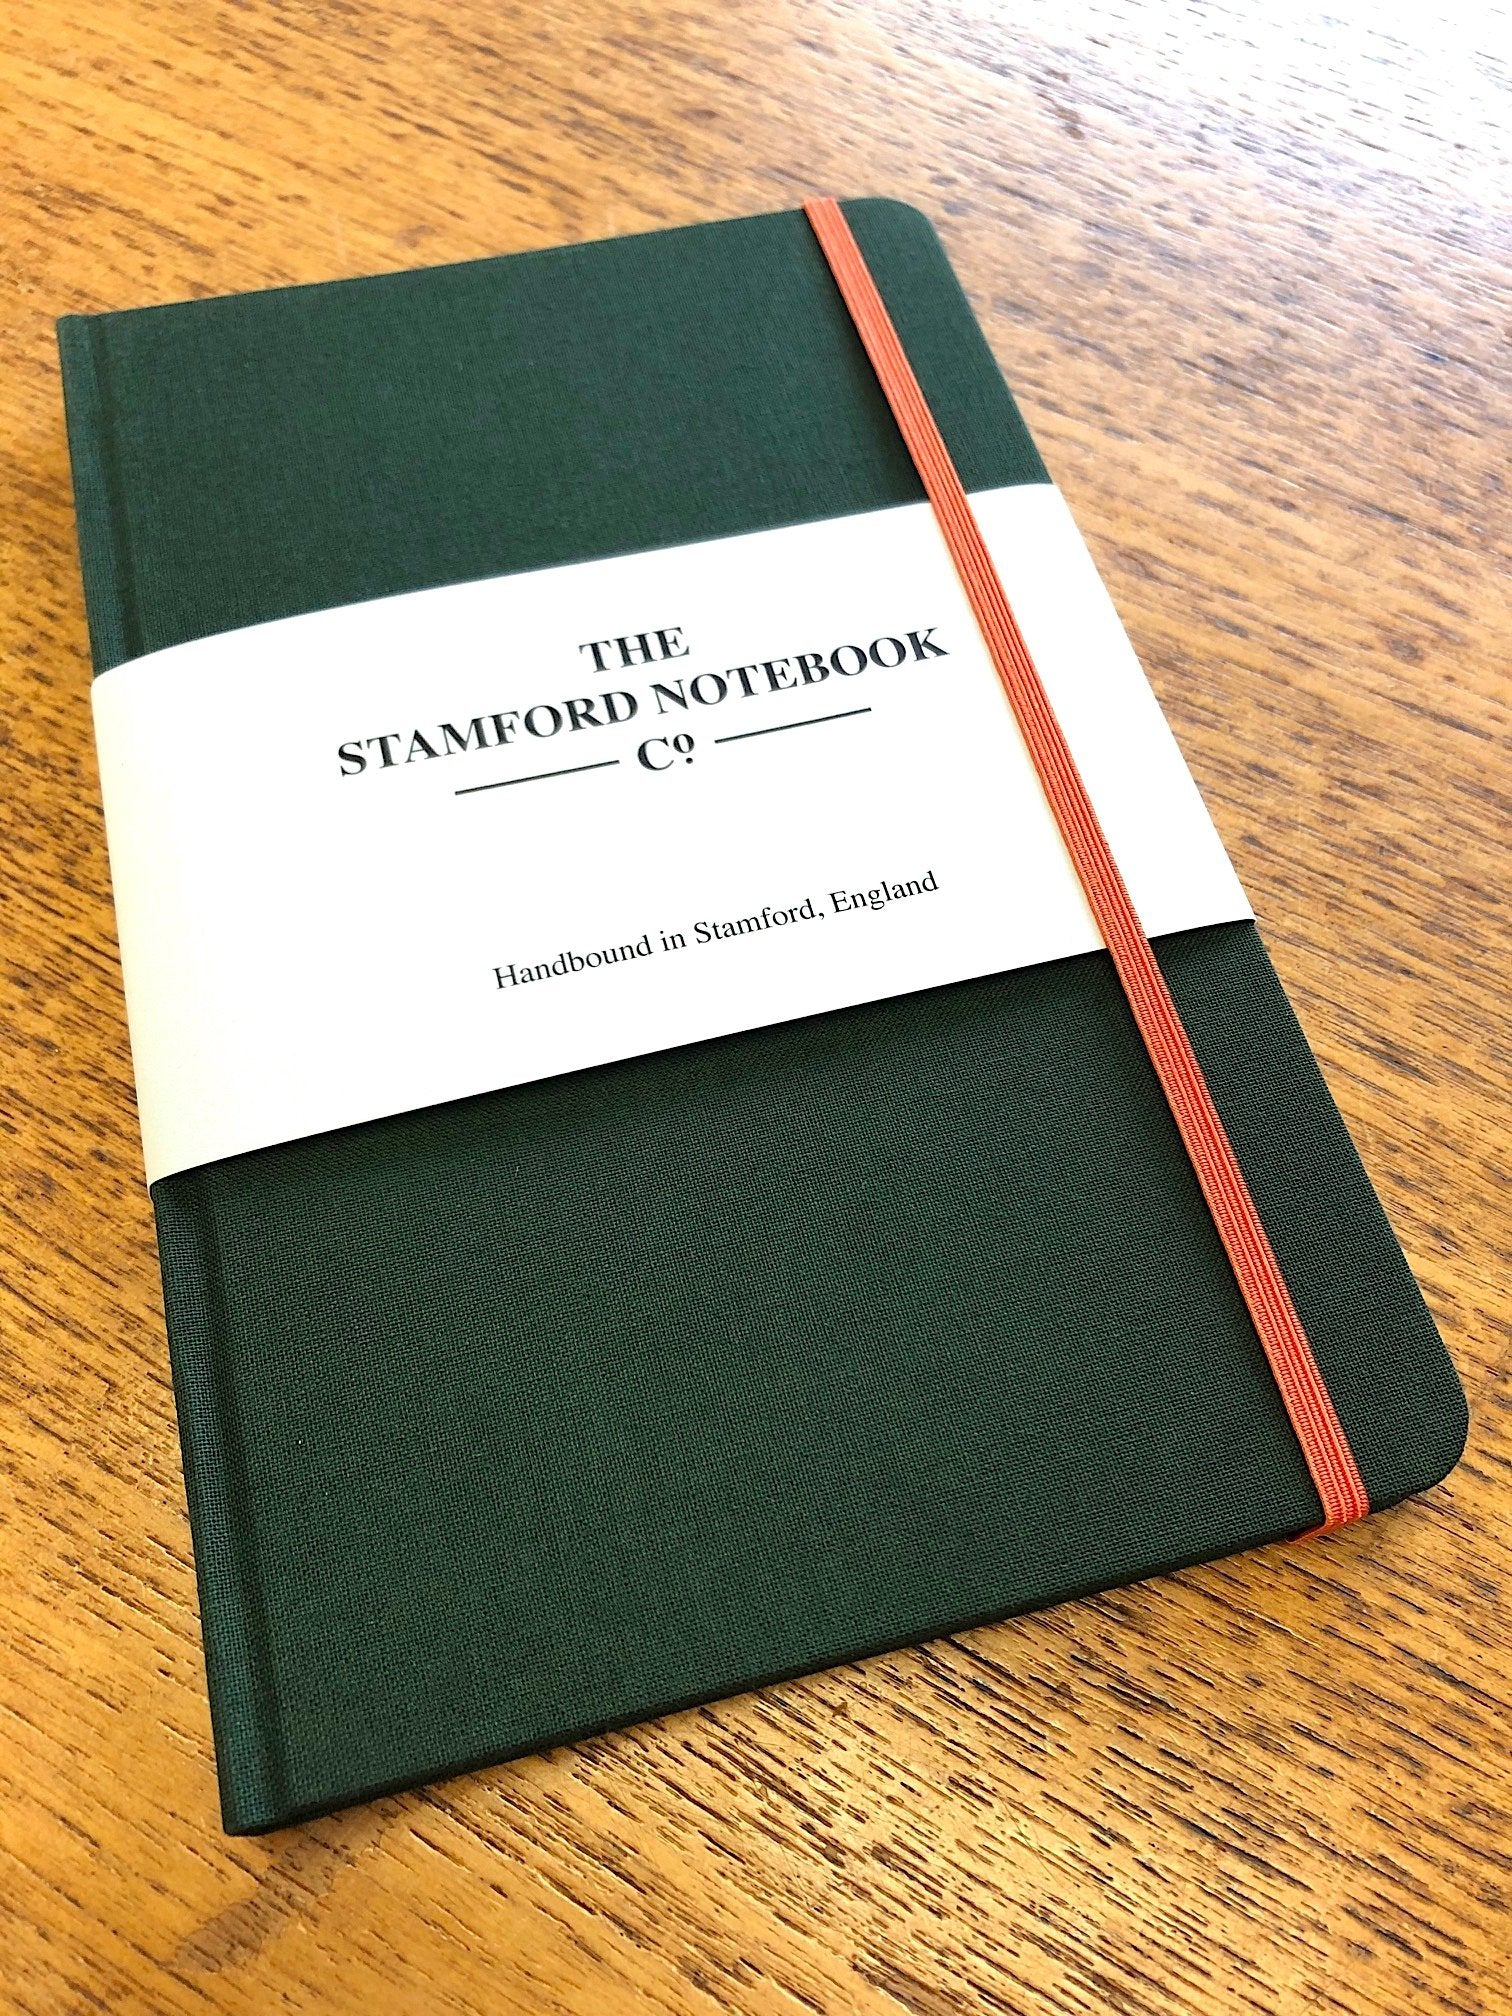 Image of Limited Edition Woven Cloth Notebook in Racing Green